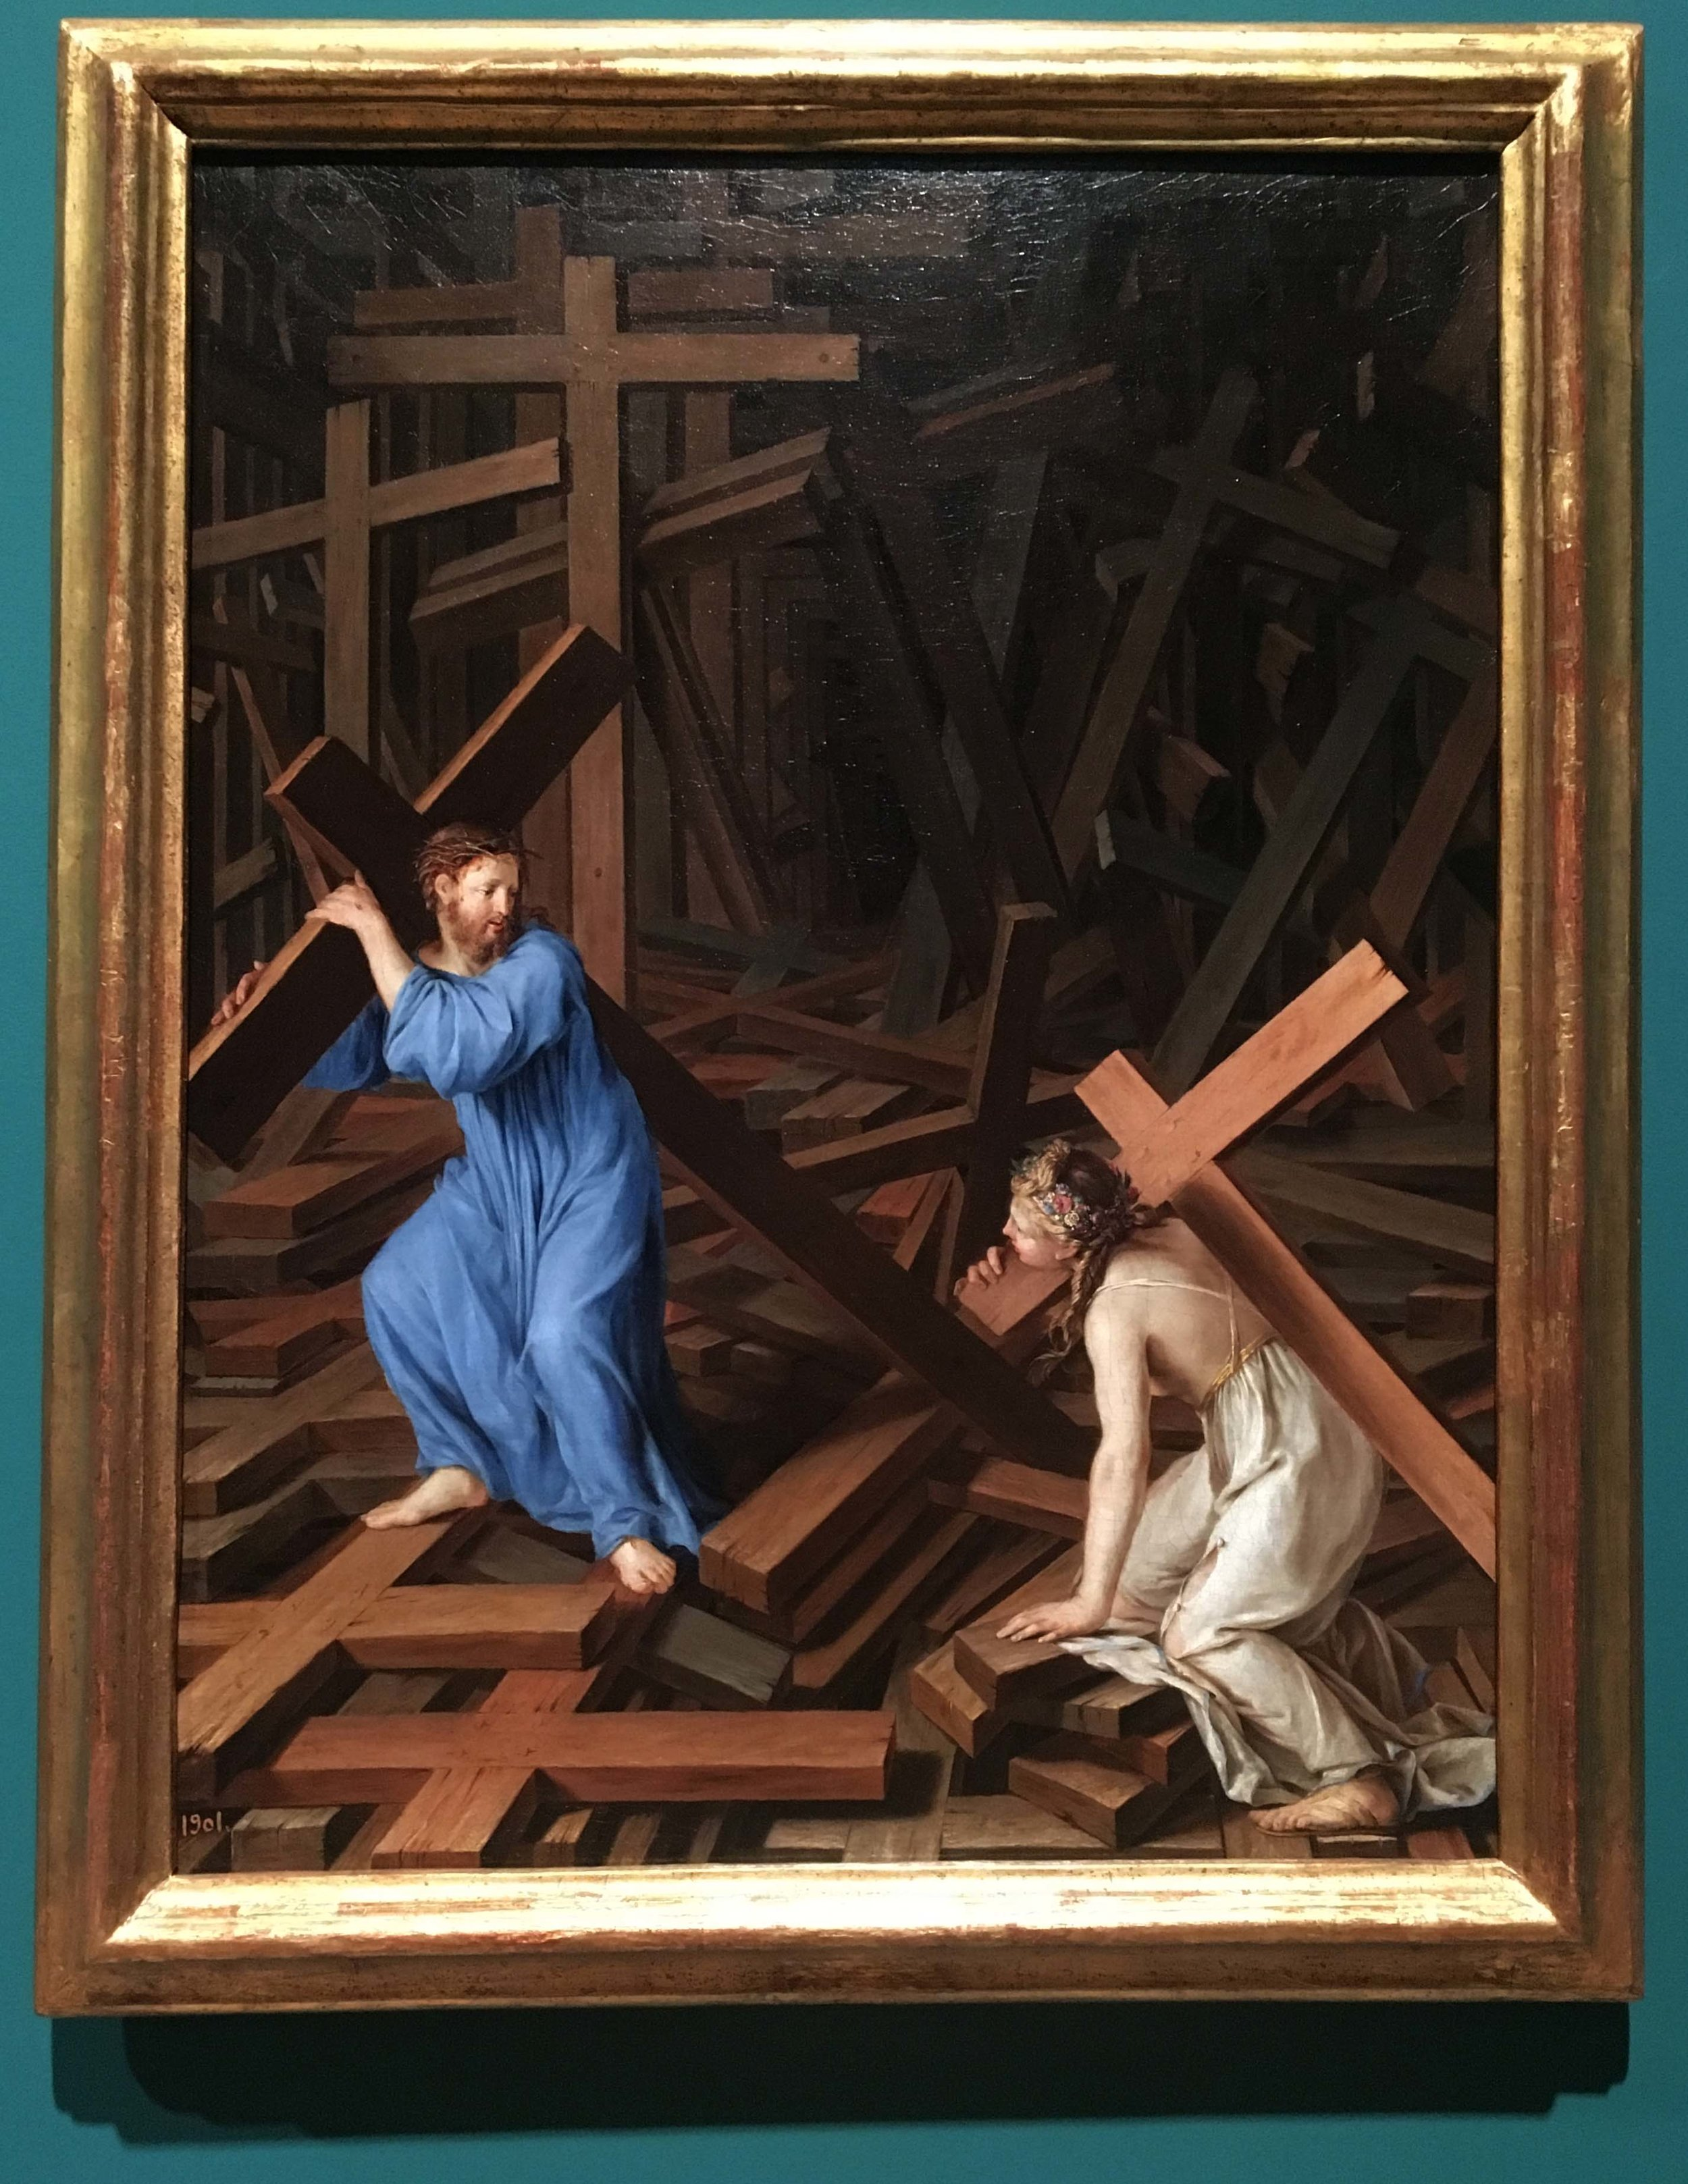 Unknown French, The Christian soul accepts the cross, 1630